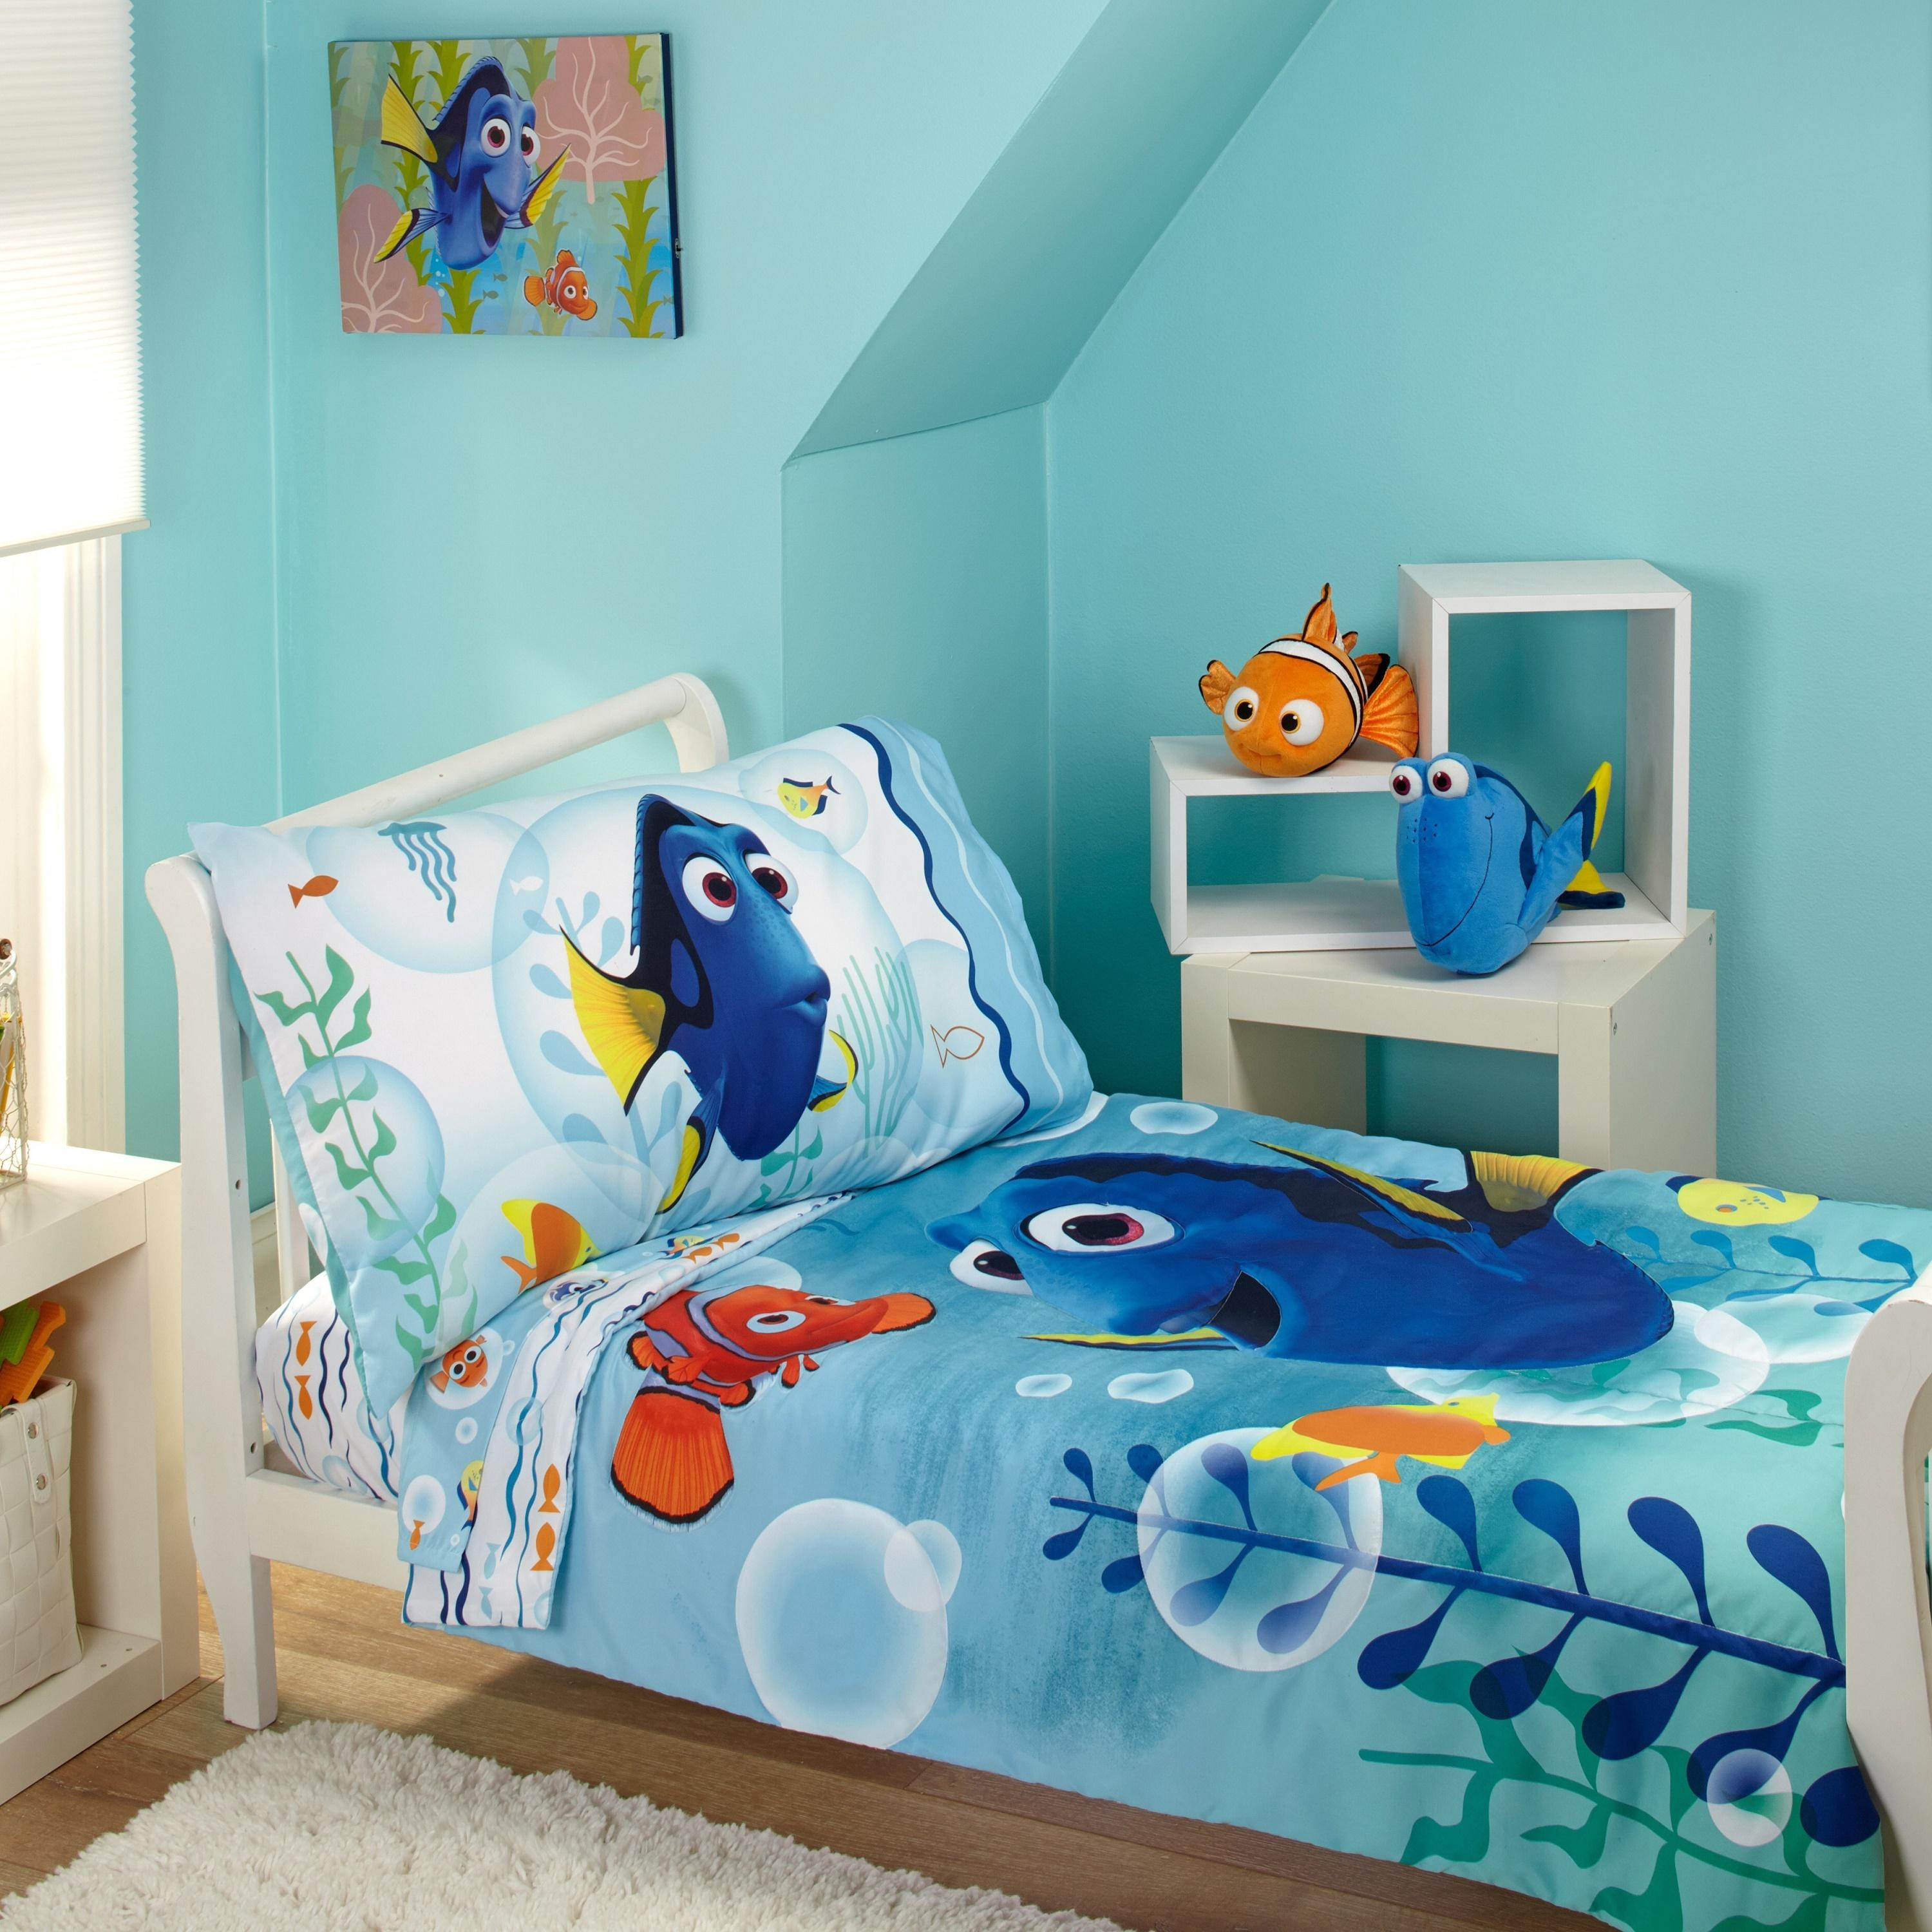 Disney Finding Dory Bubbles 4 Piece Toddler Bedding Set